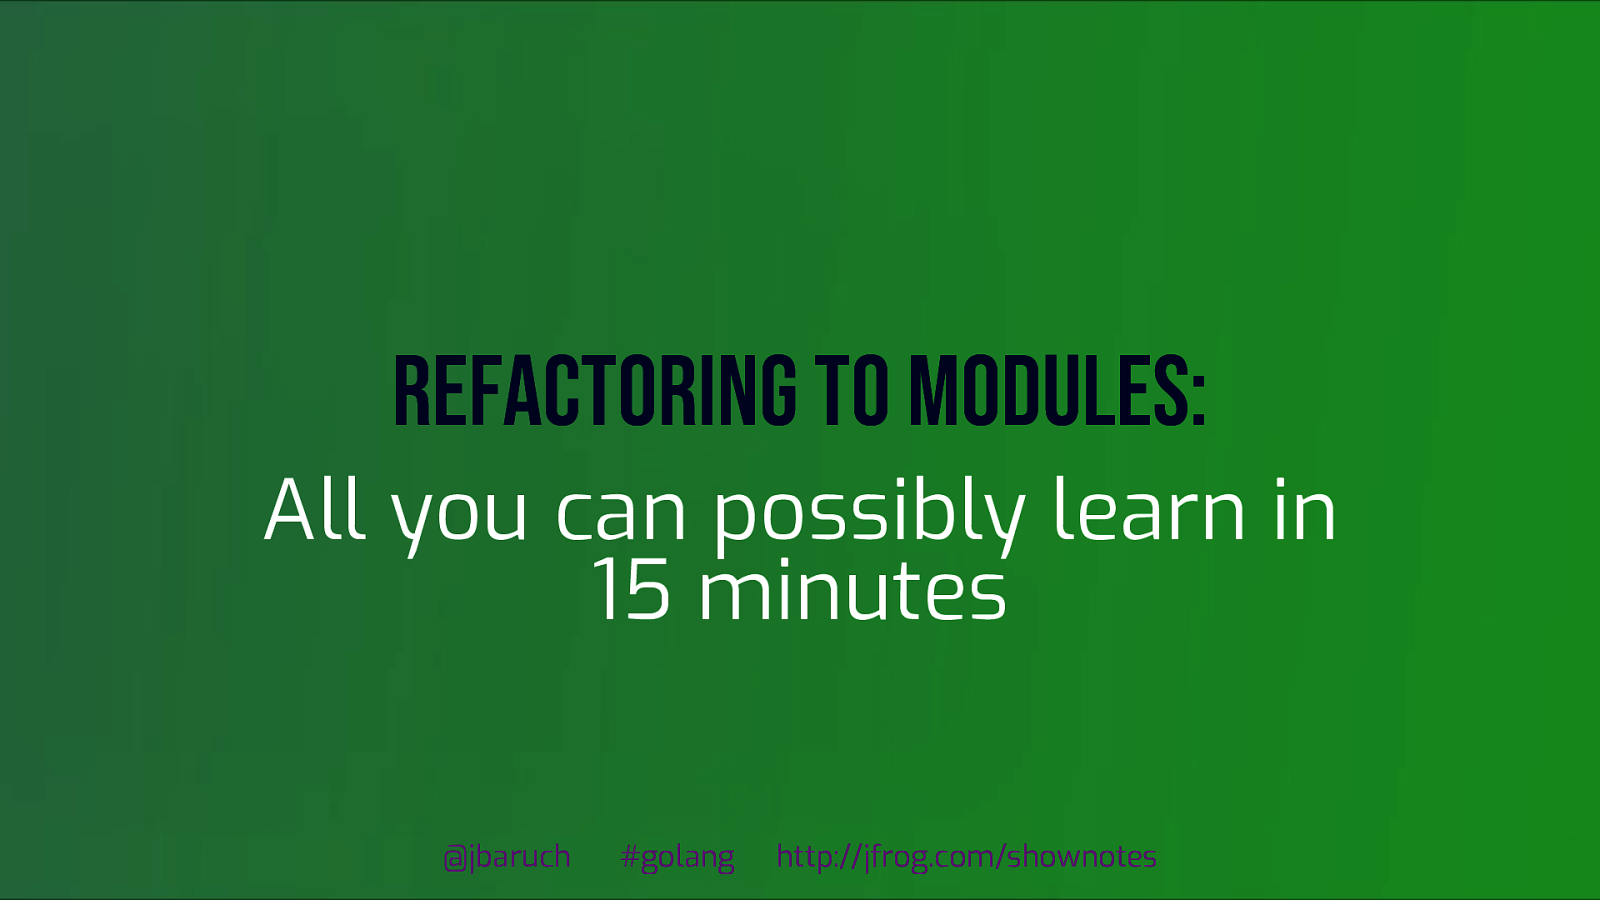 Refactoring to modules: All you can learn in 15 minutes